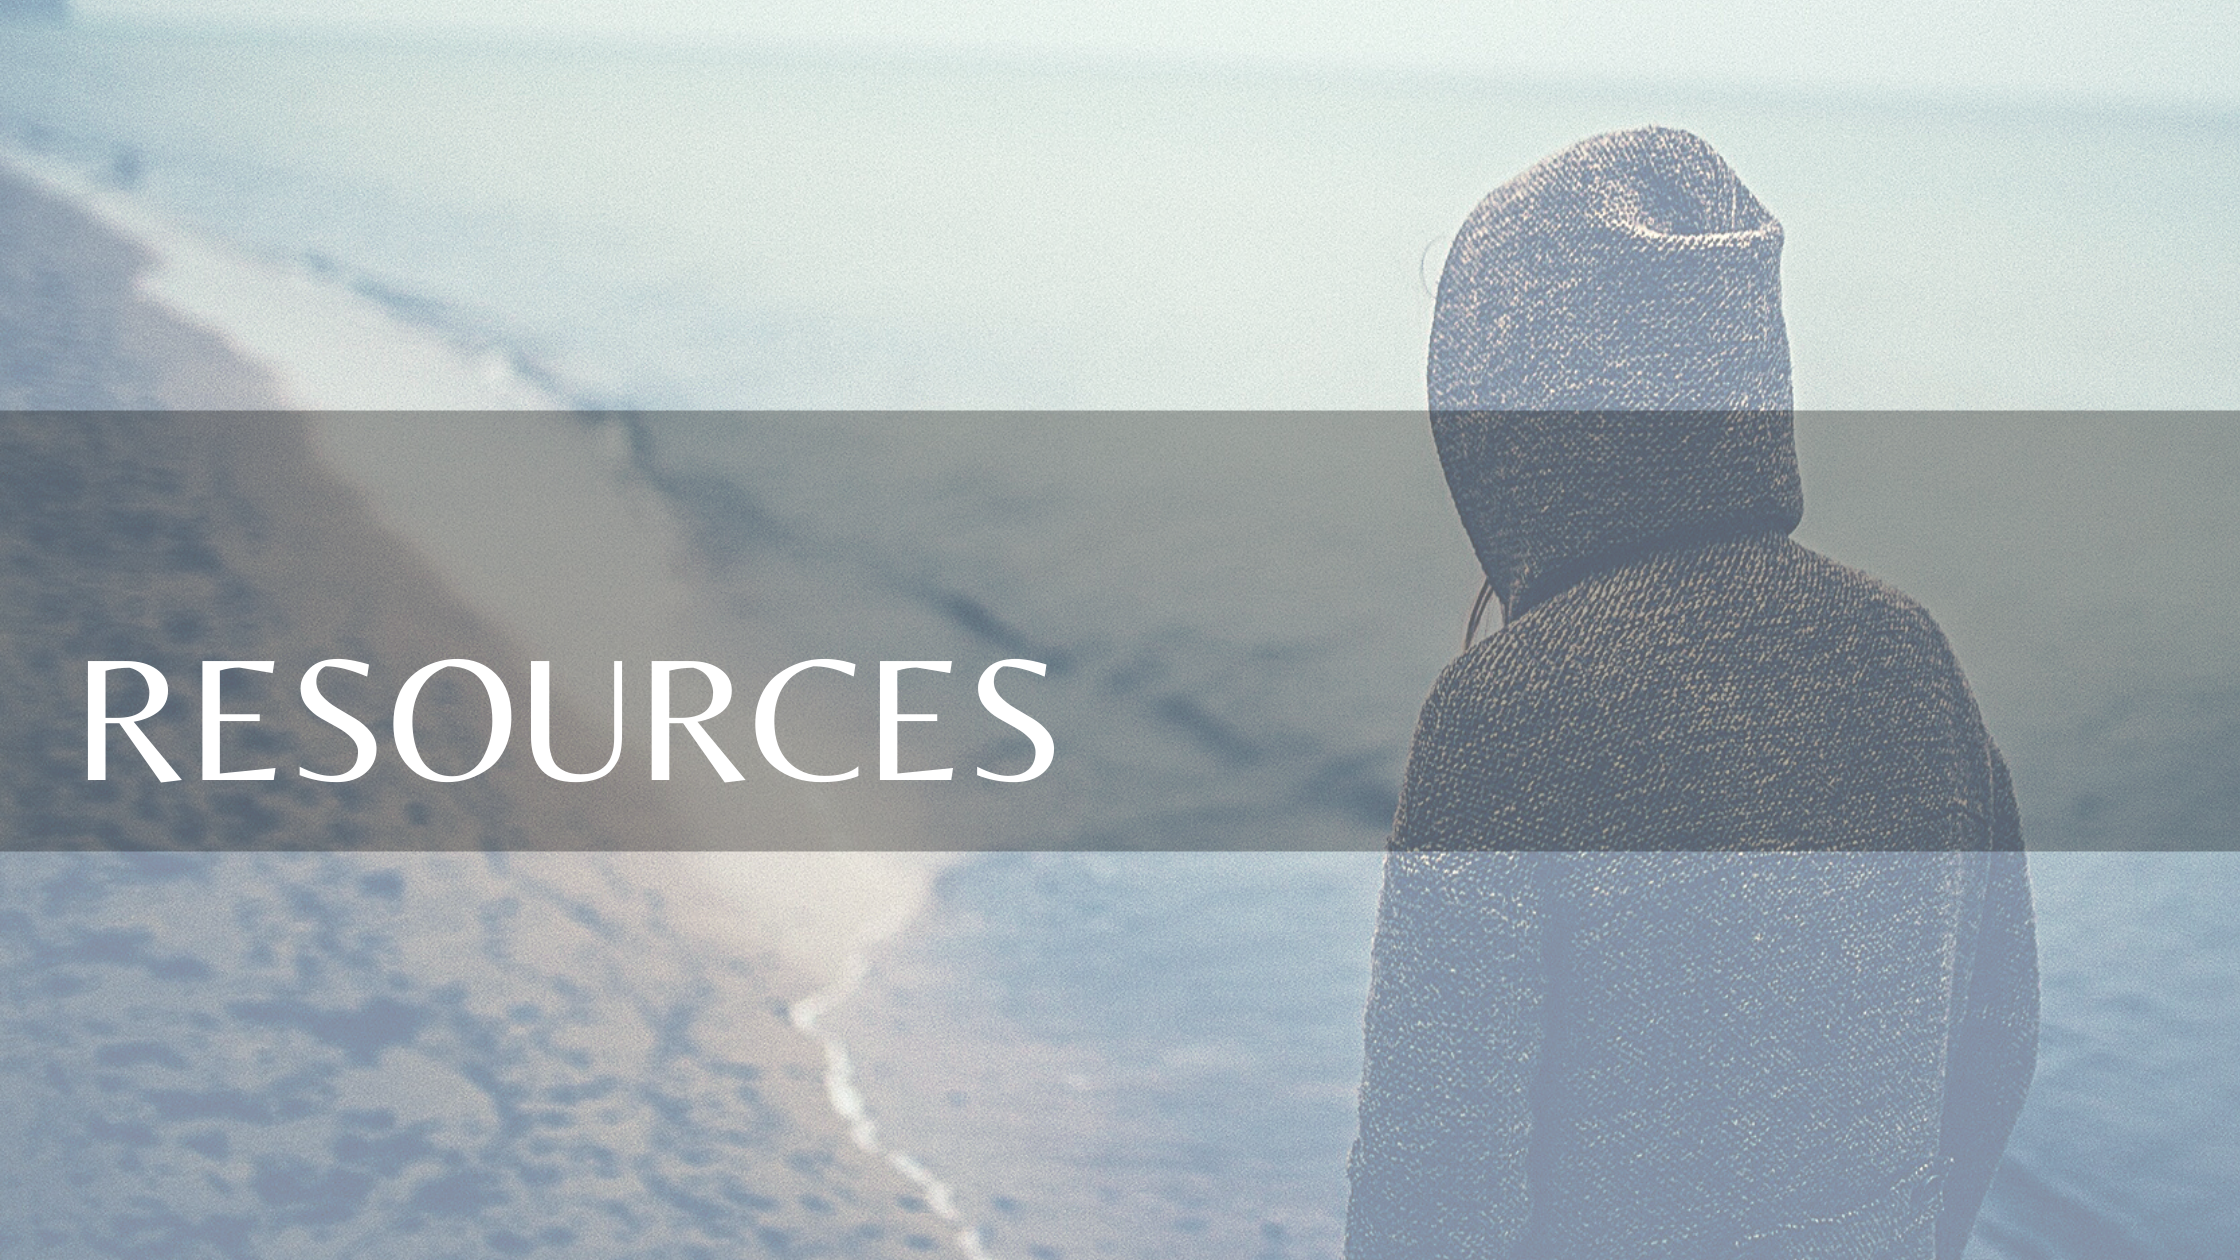 Resources for Those Experiencing Homelessness